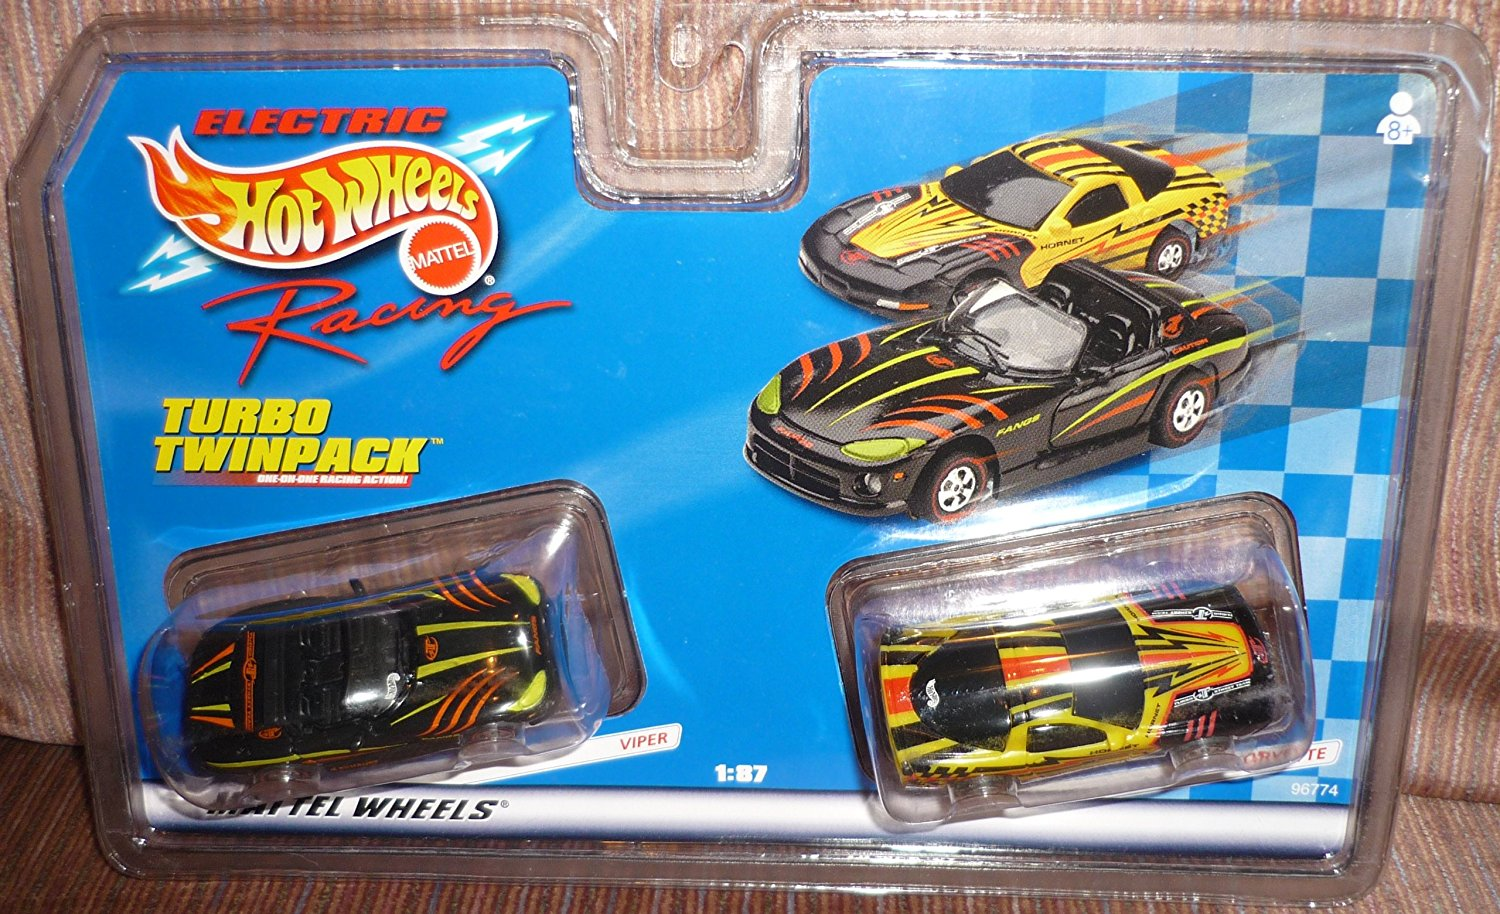 96774 Hot Wheels Electric Racing Turbo Twinpack Viper And Corvette 1 87 Scale